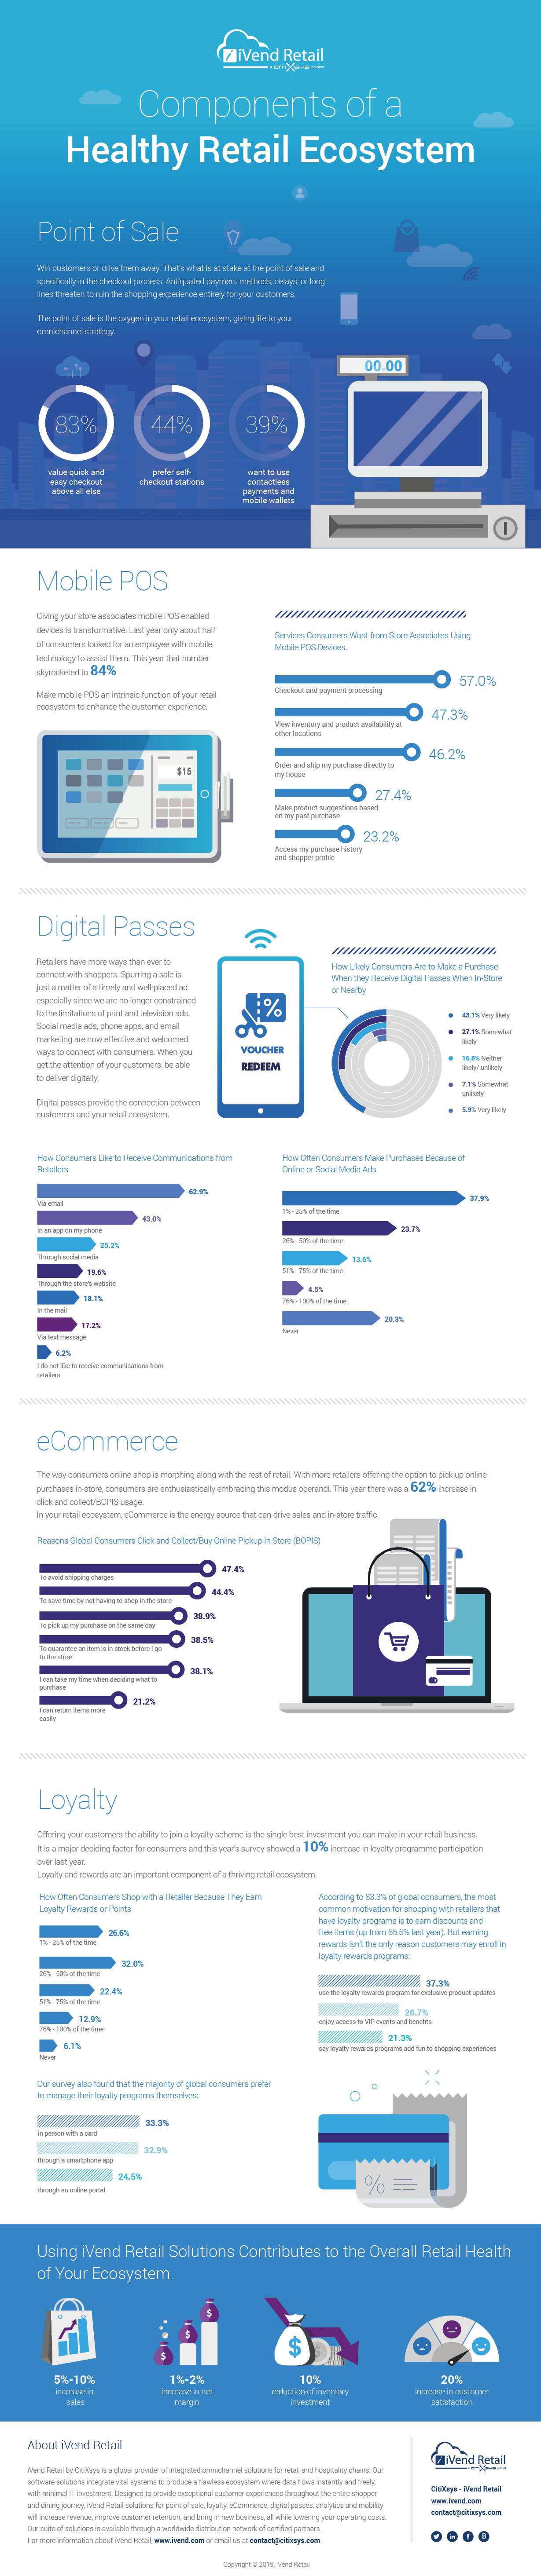 2019 Components of a Healthy Retail Ecosystem Infographic